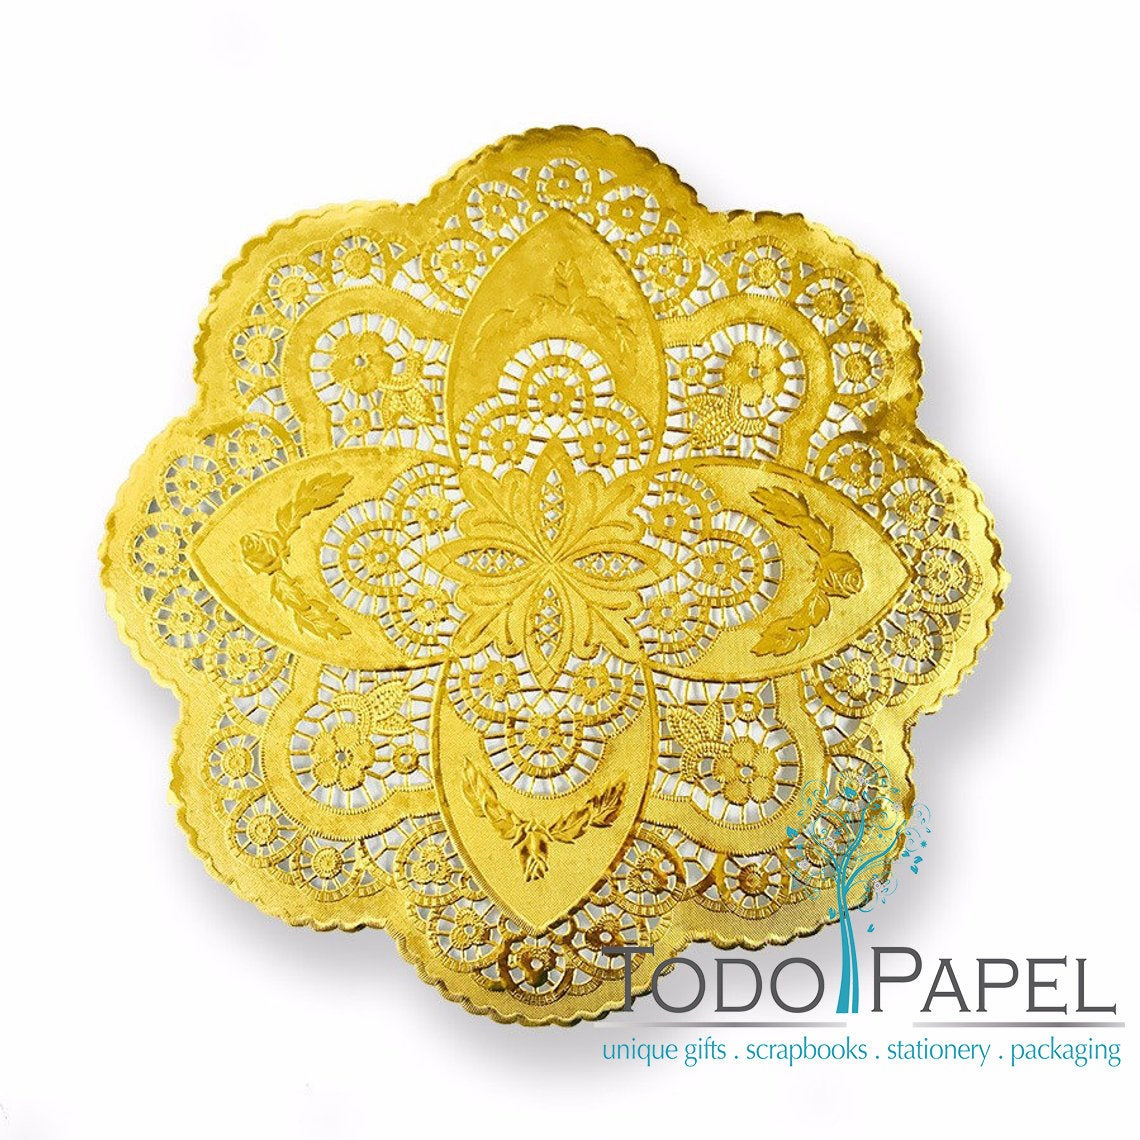 50 pack 12 inch; GOLD Metallic Foil Unique Style Doilies. Beautiful Scalloped edge design - Perfect Charger Placemats for Wedding Reception table decor